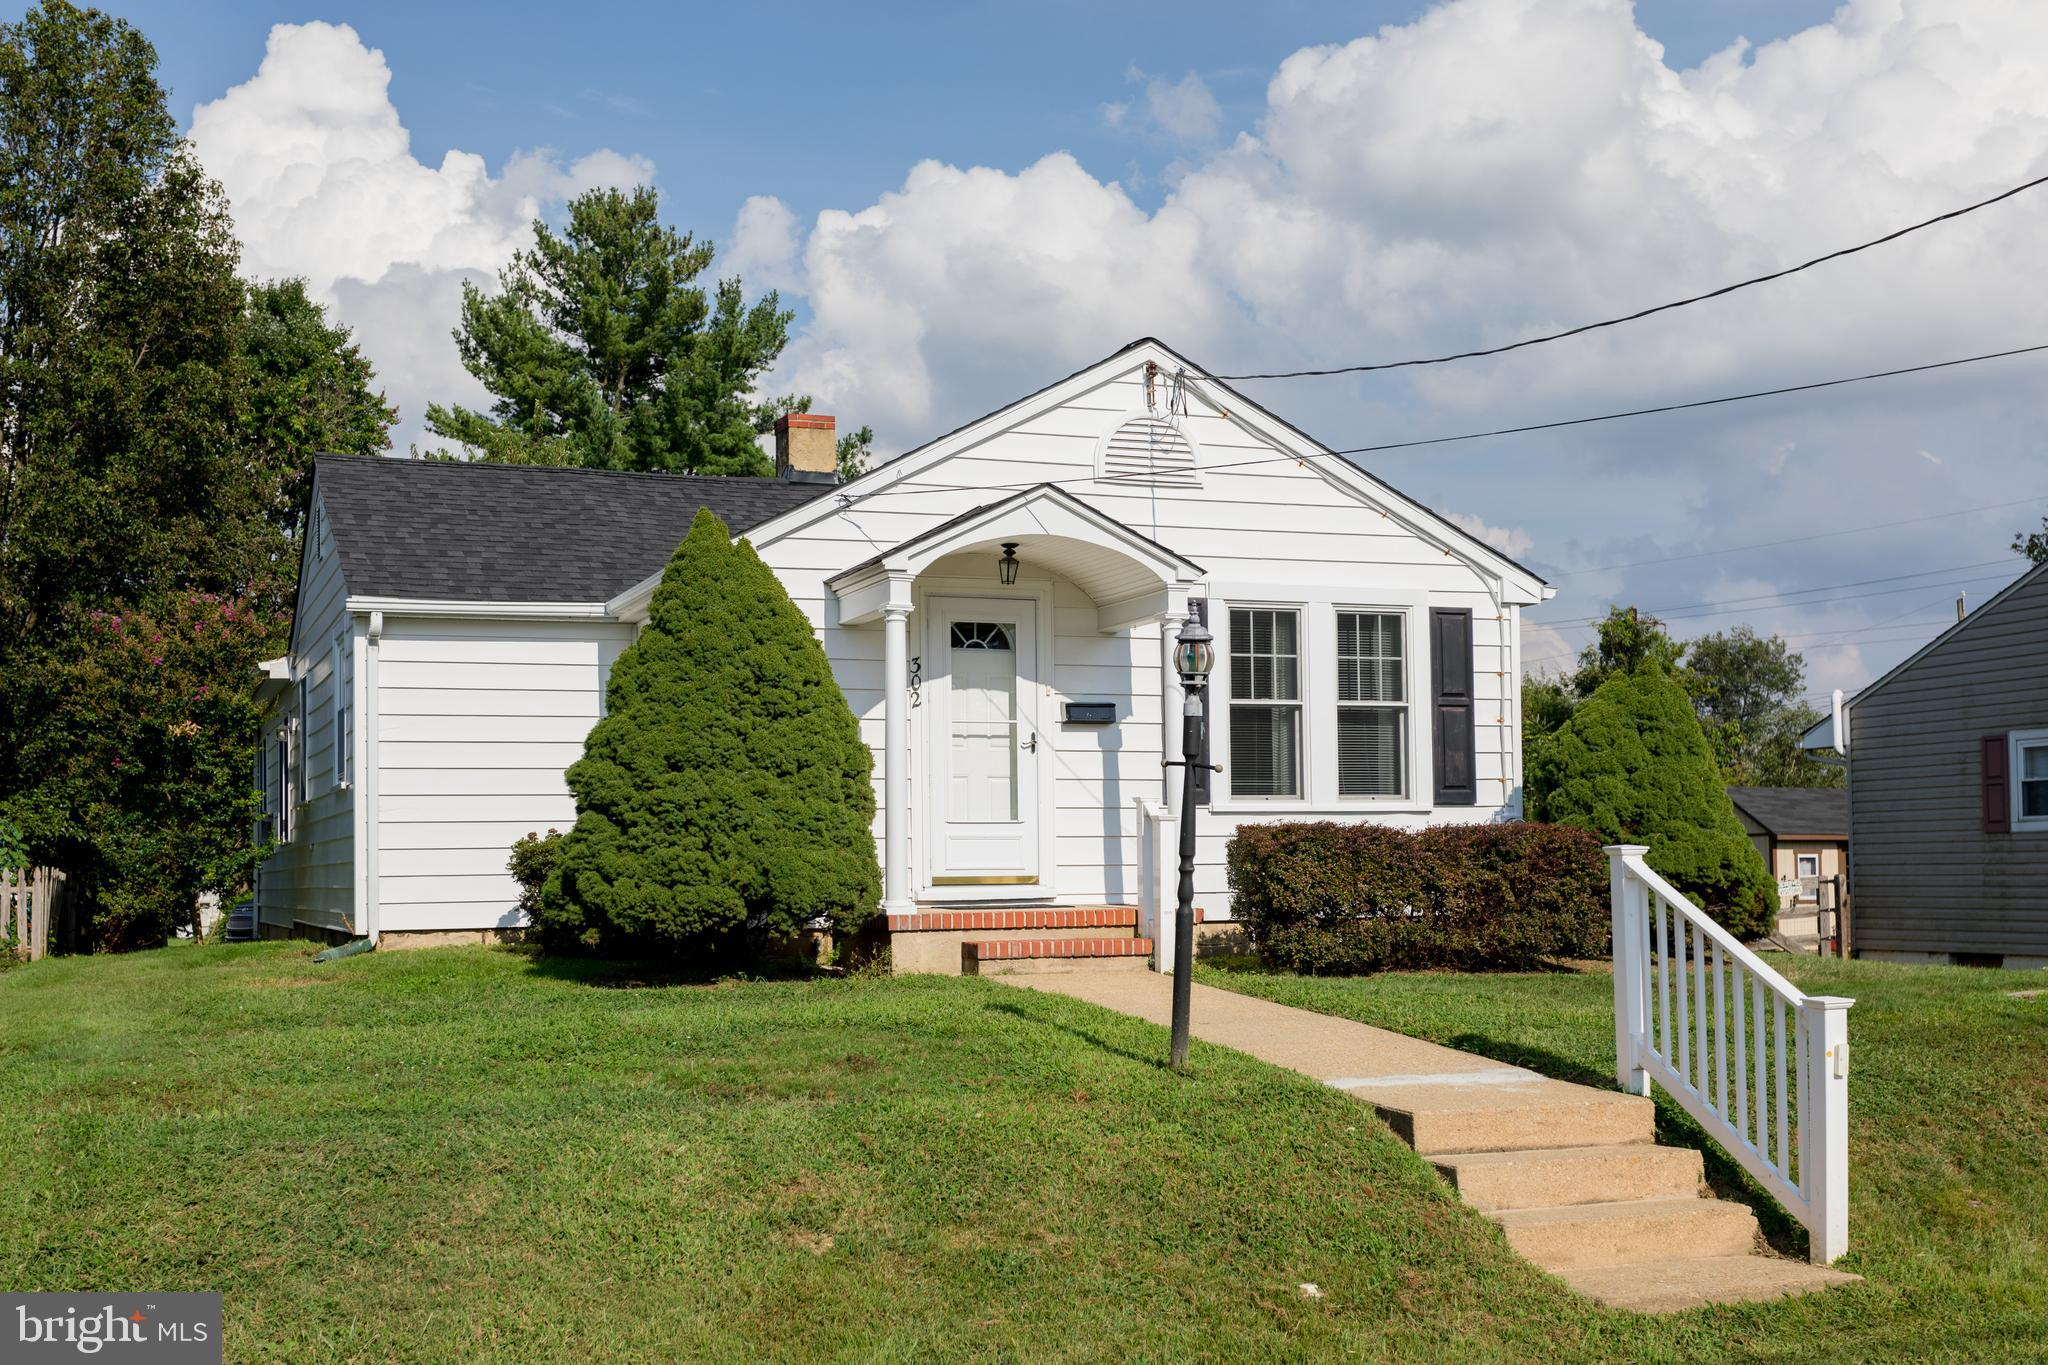 FOLLOW MY HEELS to this adorable home in Elkton Heights filled with so much charm. You will feel pri